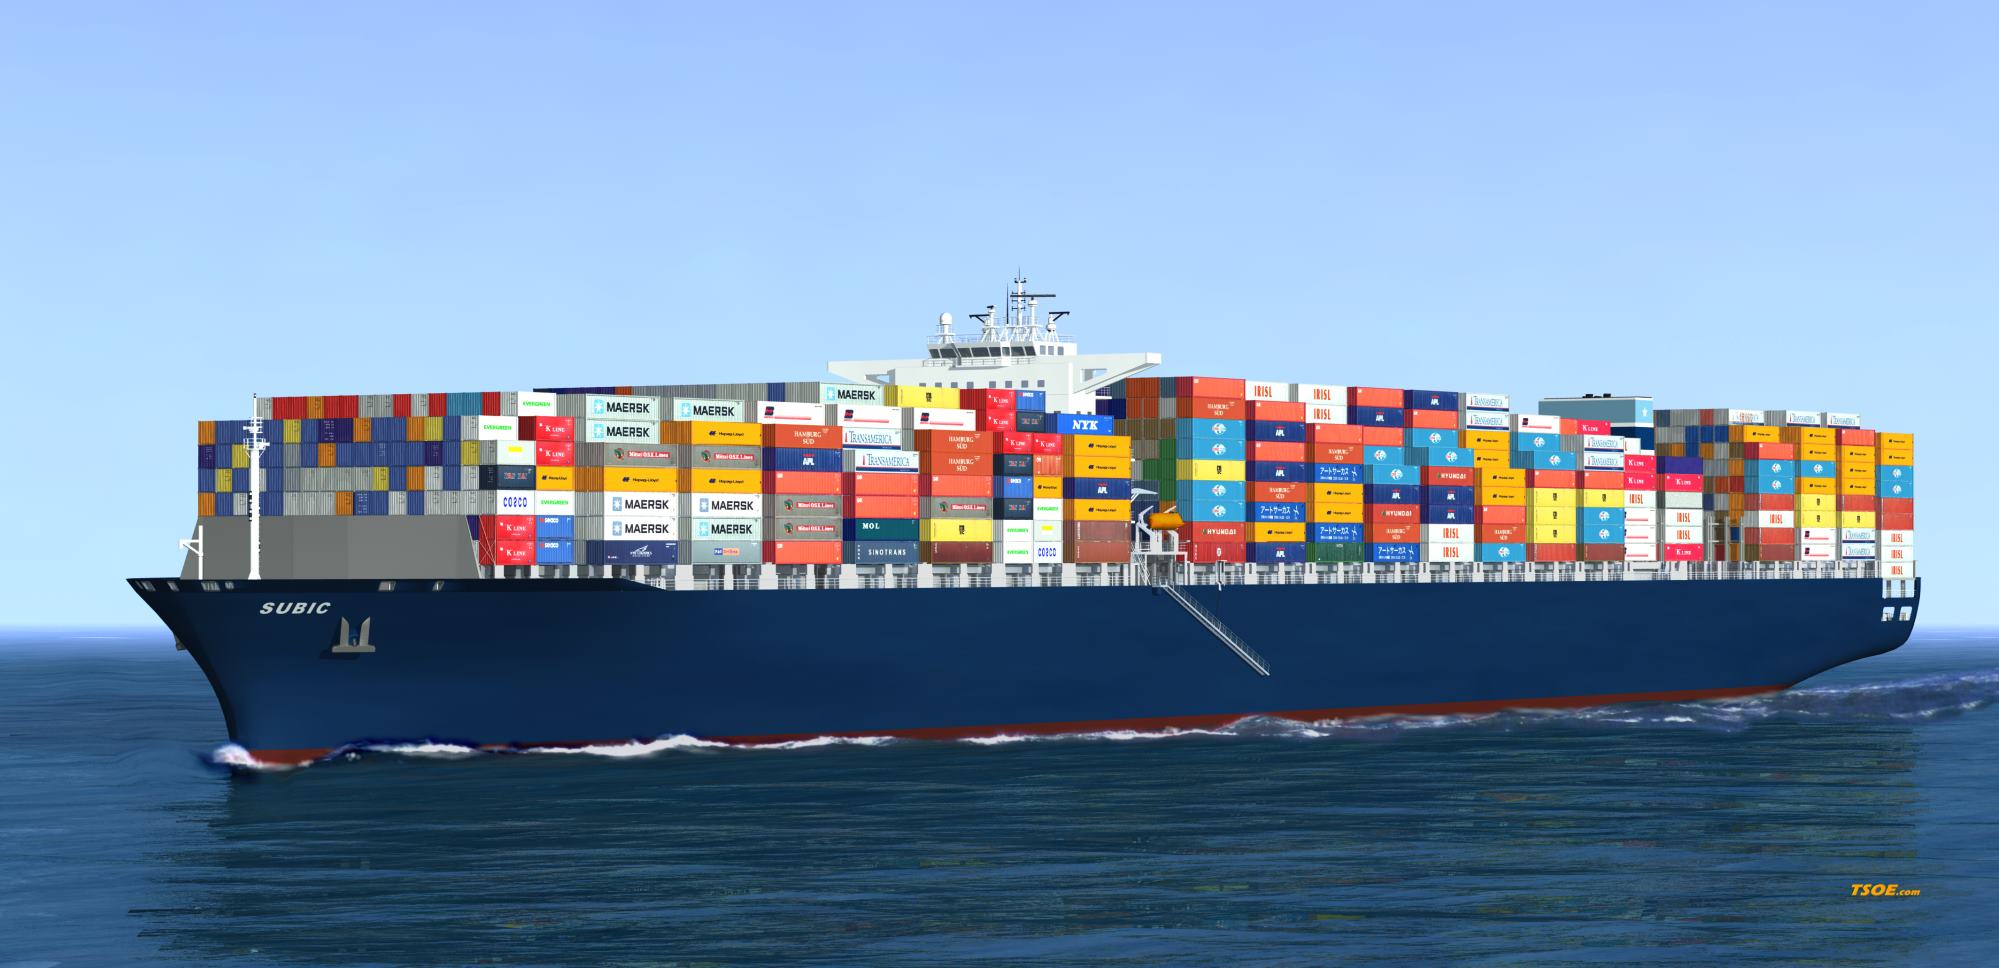 container shipping is a major industry today commerce essay The uk autonomous shipping industry is set to receive a boost with the recently unveiled funding of gbp 1 million  for the construction of five new major vessels.